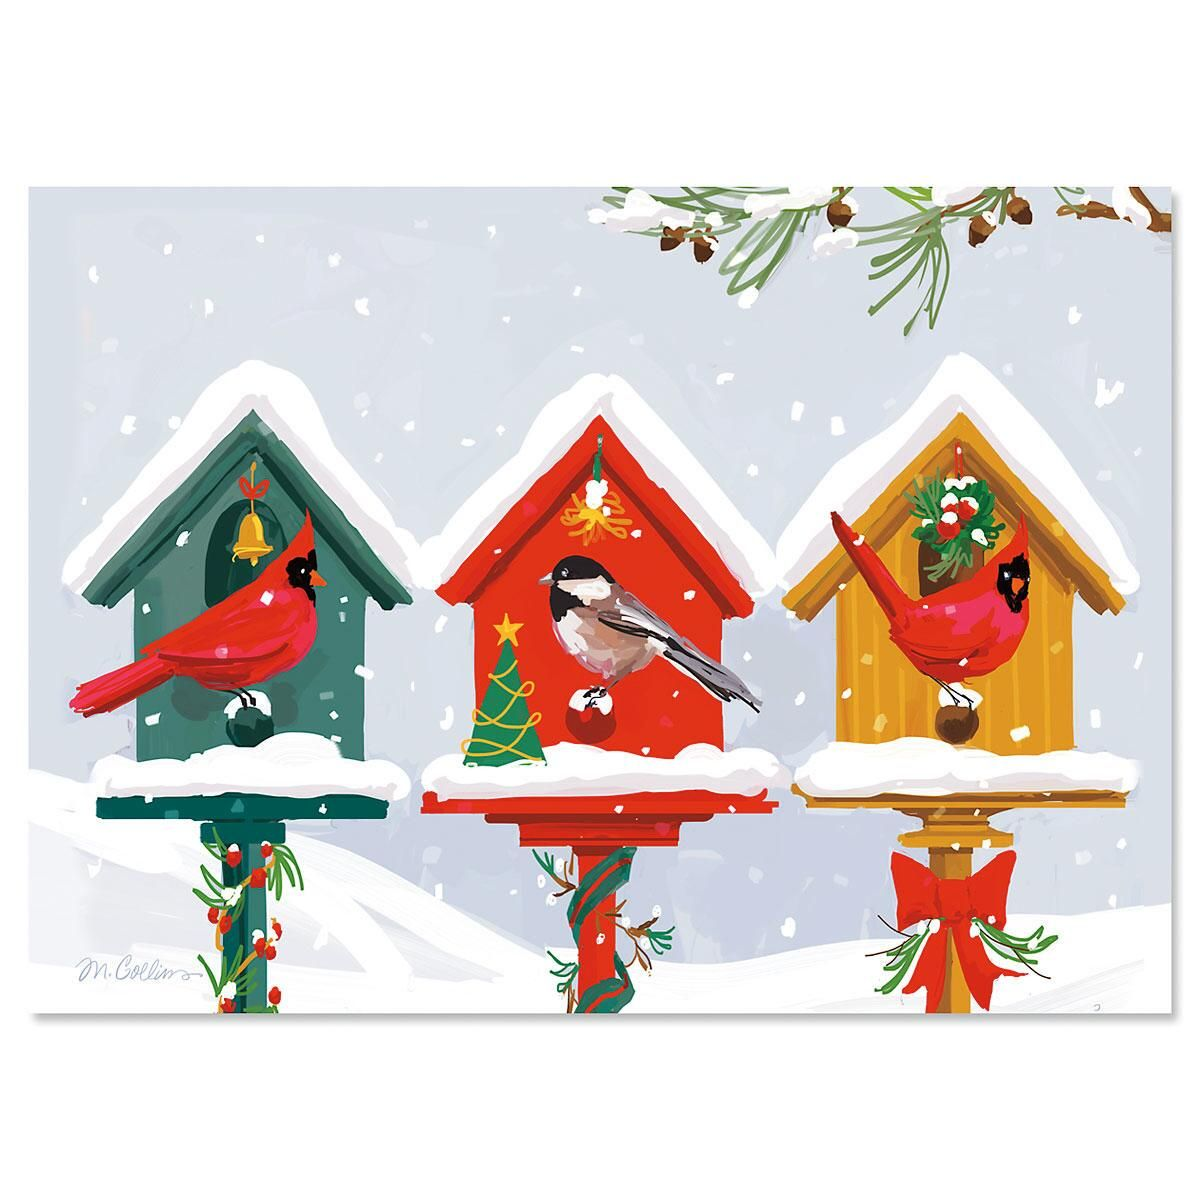 Holiday Birdhouse Nonpersonalized Christmas Cards - Set of 18